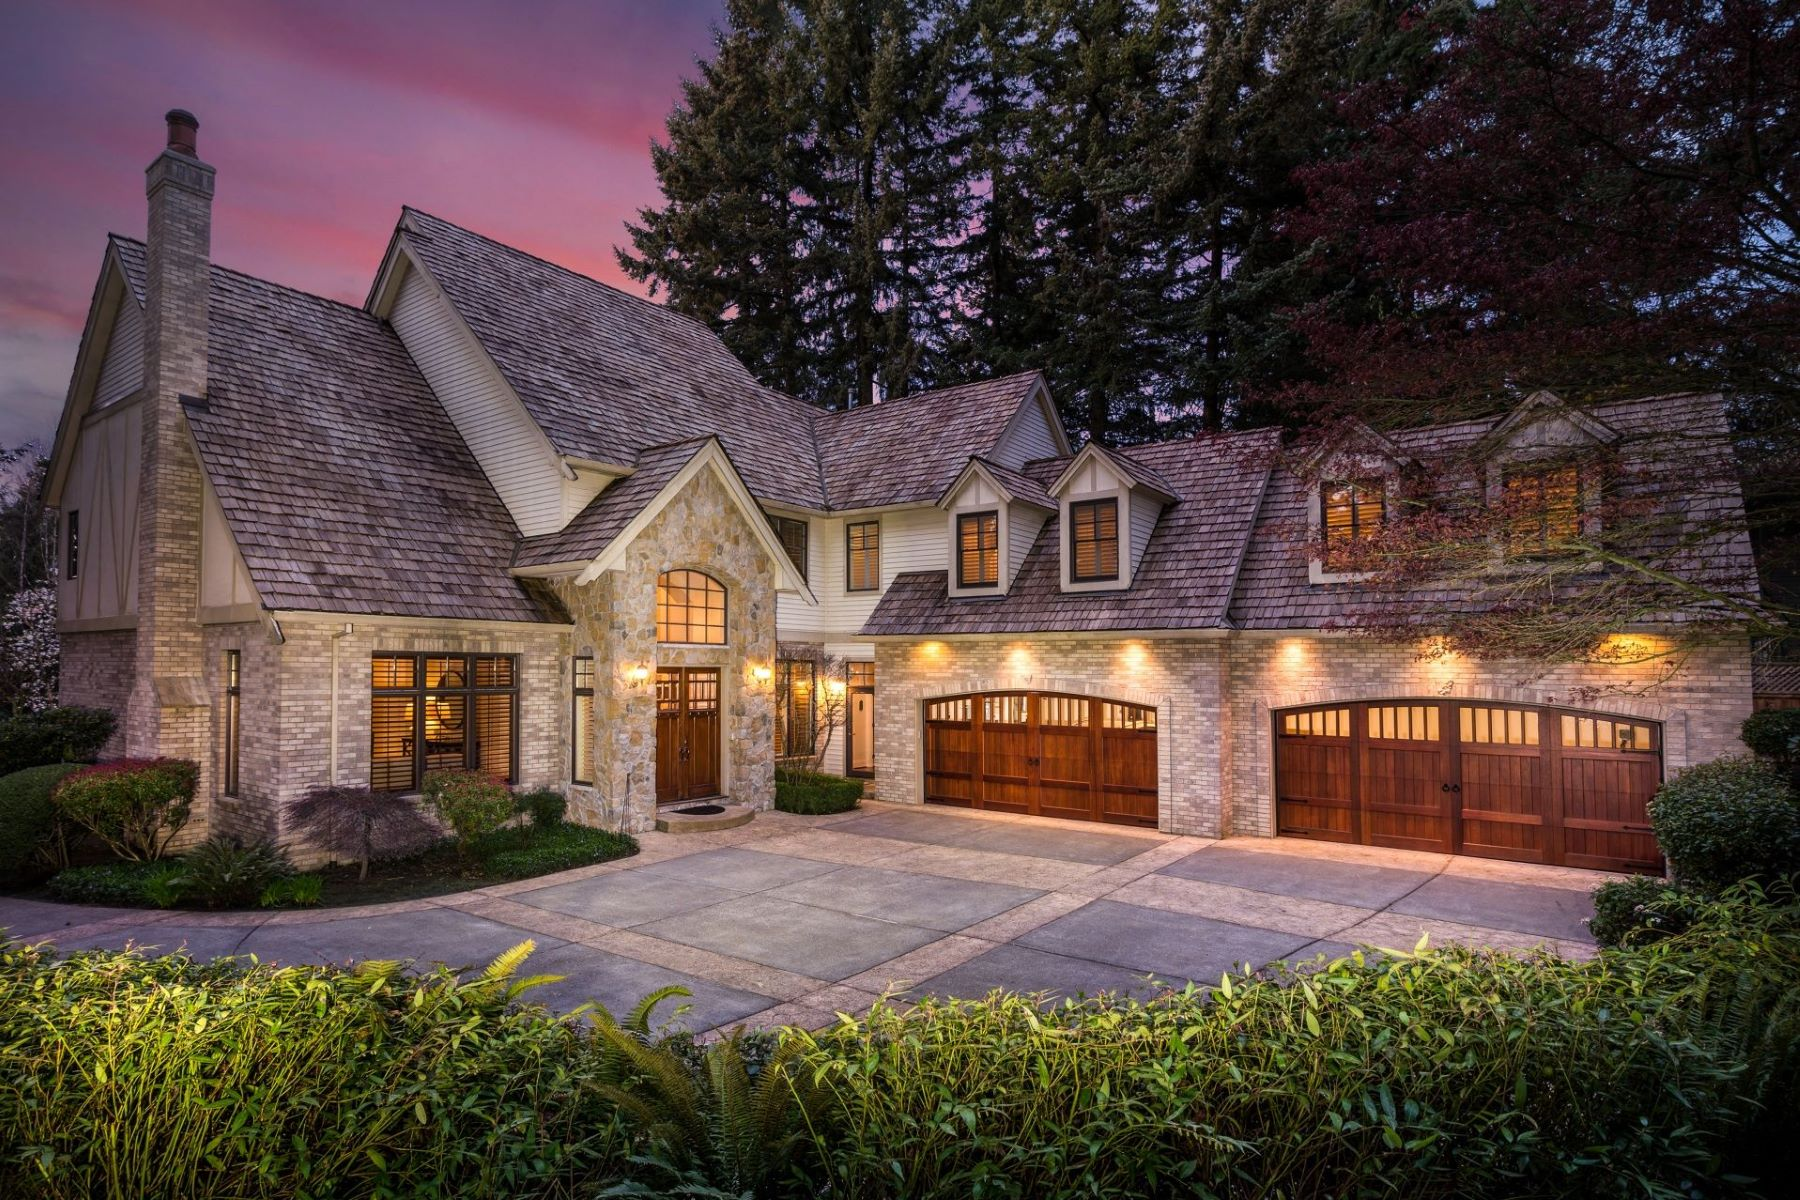 Other Residential Homes for Active at 800 TERRACE DR Lake Oswego, OR 97034 800 TERRACE DR Lake Oswego, Oregon 97034 United States